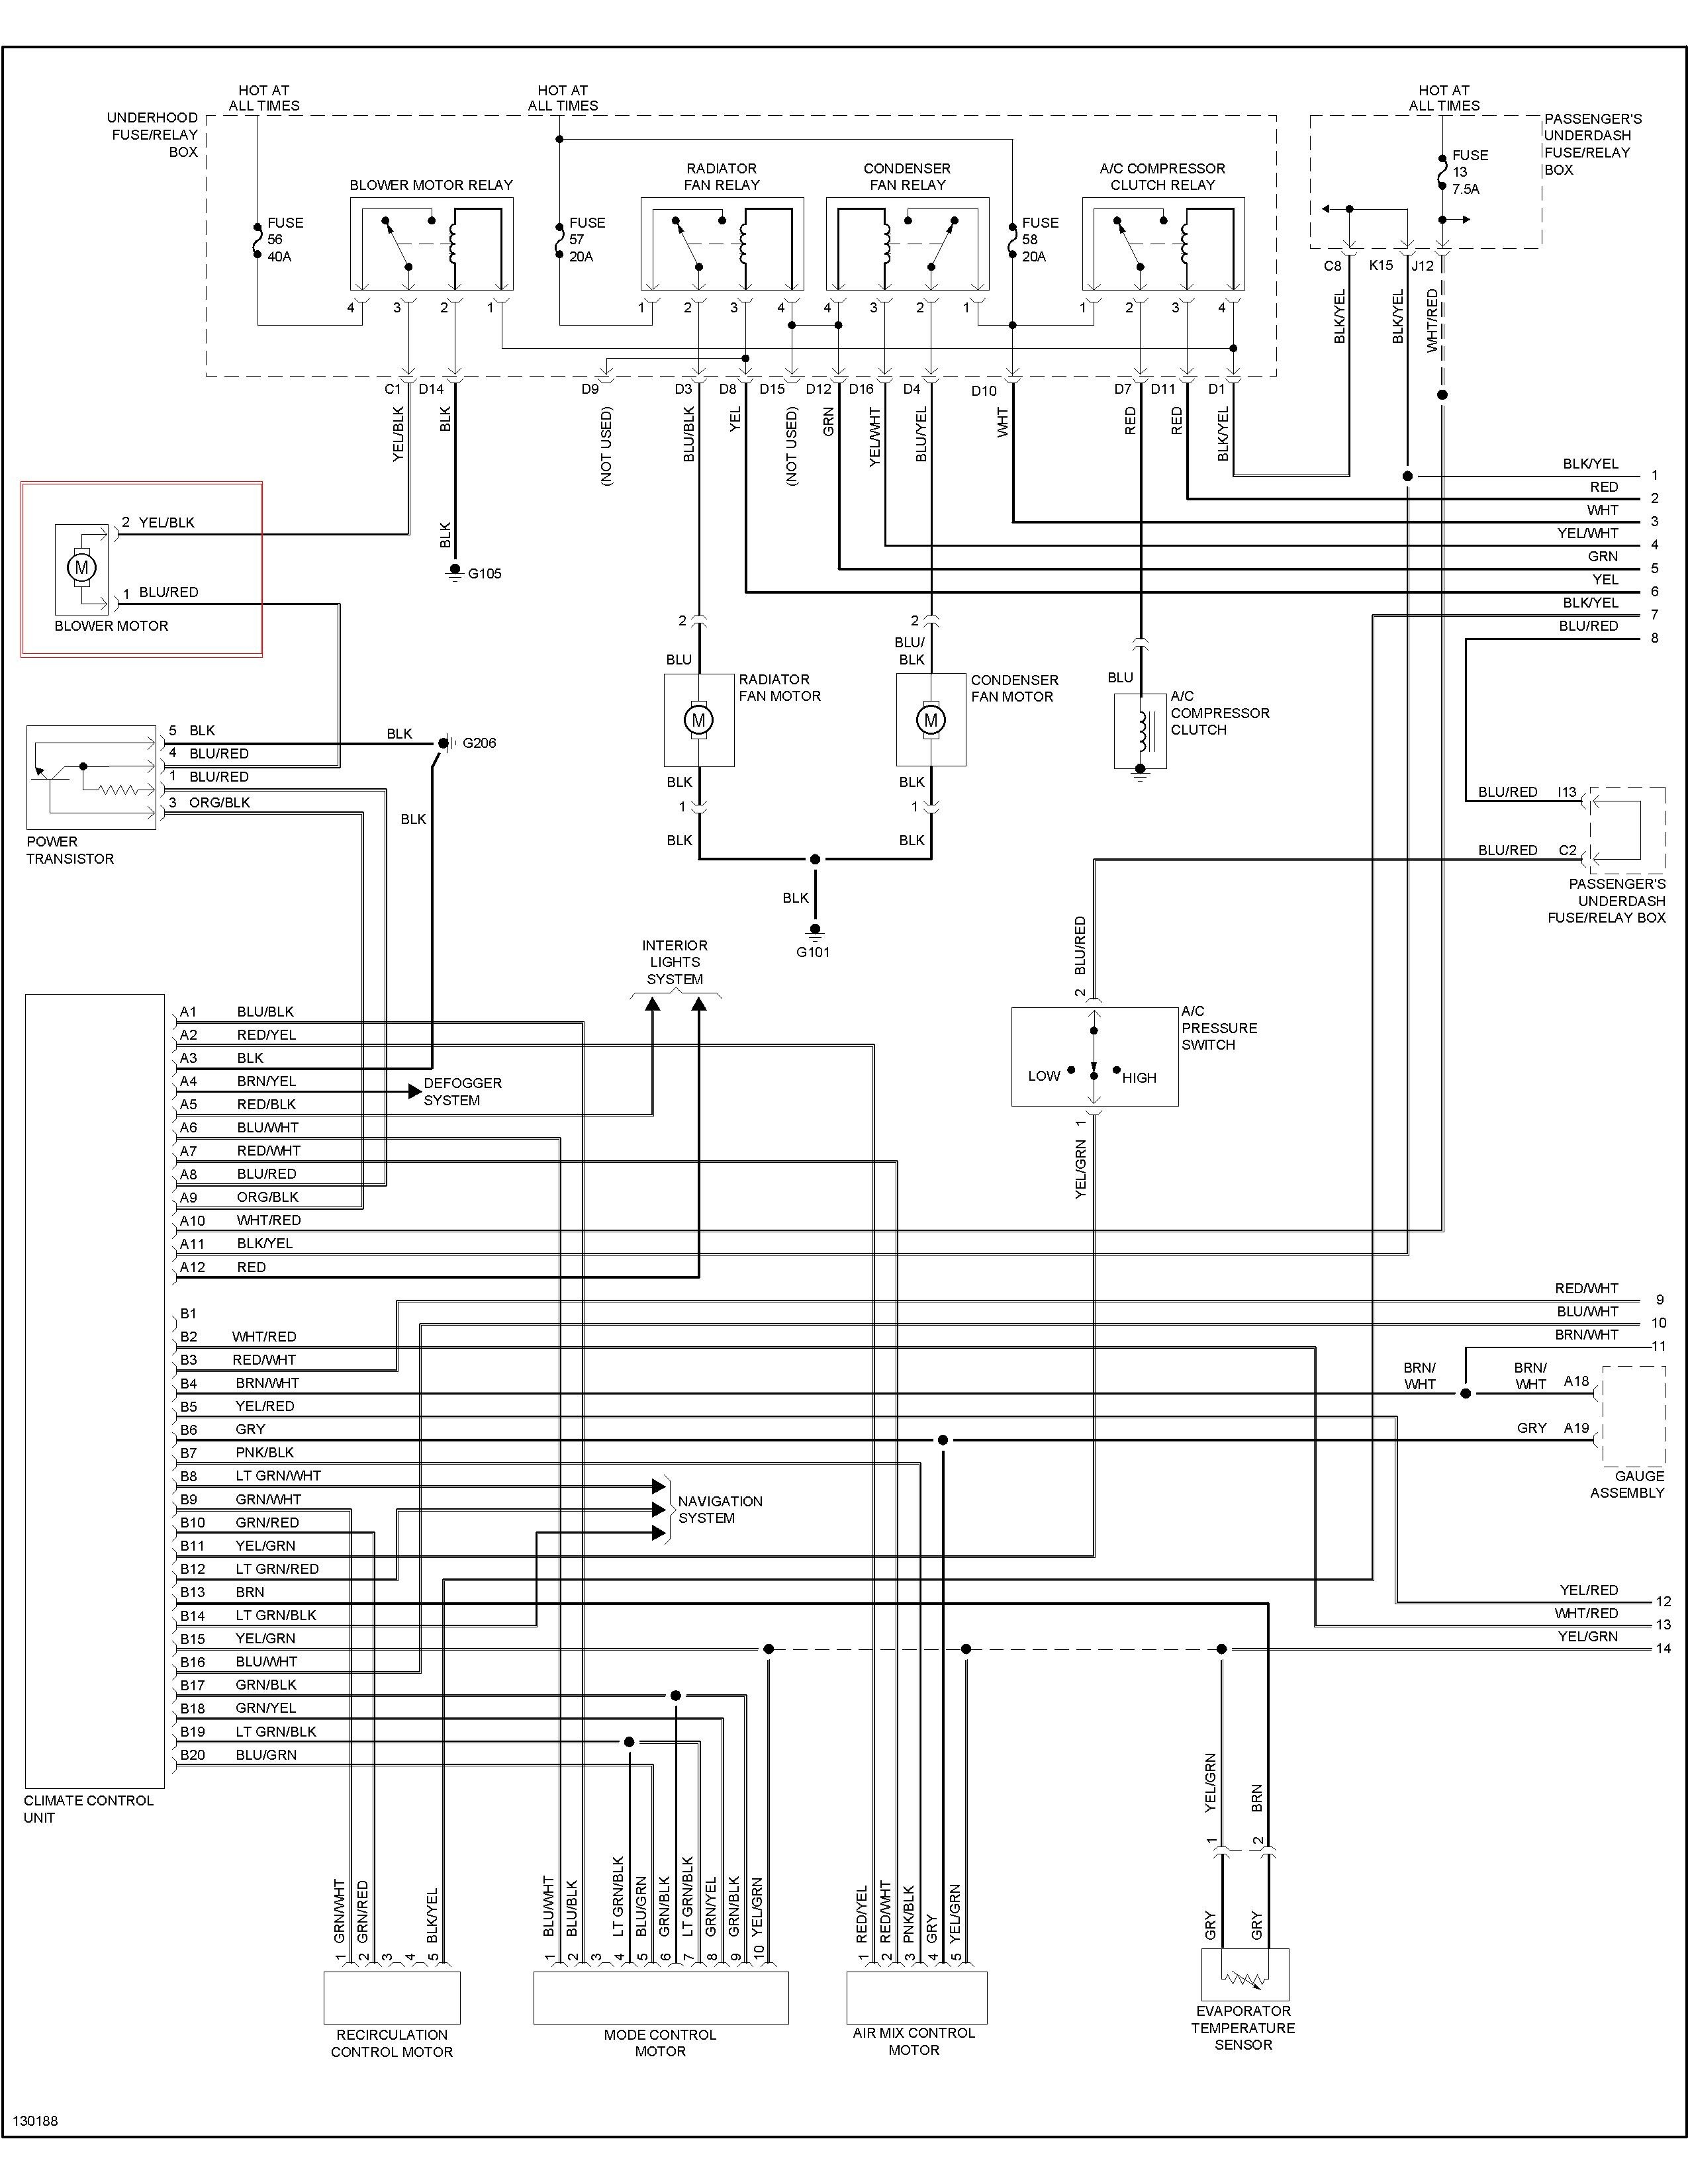 2004 Gmc Sierra Injector Wire Sqemtic Diagram] 1998 Acura Wiring Diagram Full Version Hd Quality Of 2004 Gmc Sierra Injector Wire Sqemtic